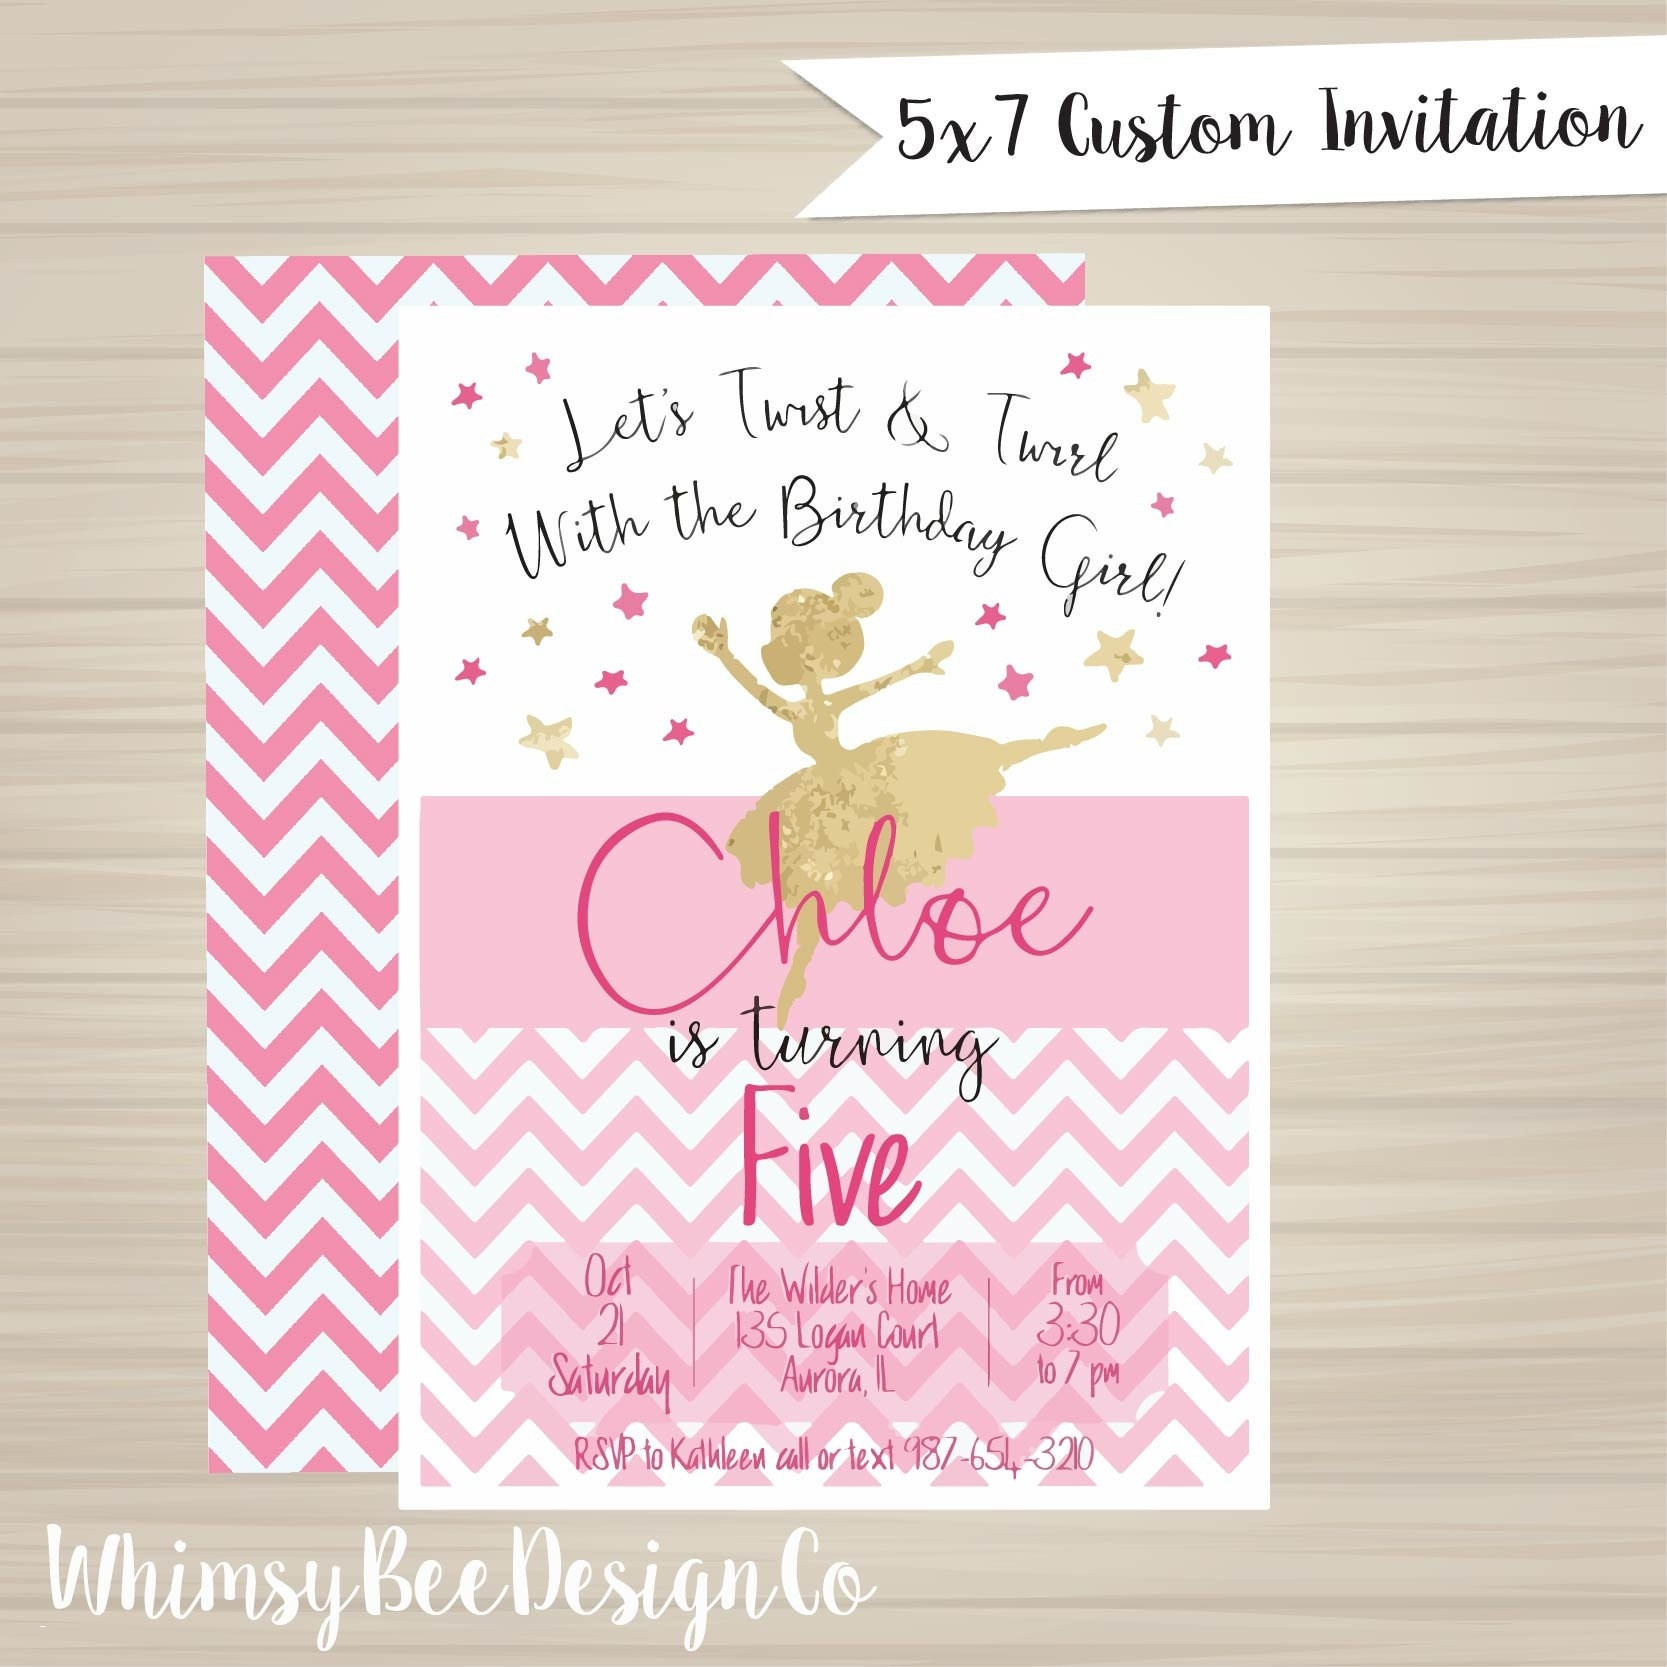 Surprise Birthday Invitations Fresh Free Printable Surprise Birthday - Free Printable Polka Dot Birthday Party Invitations